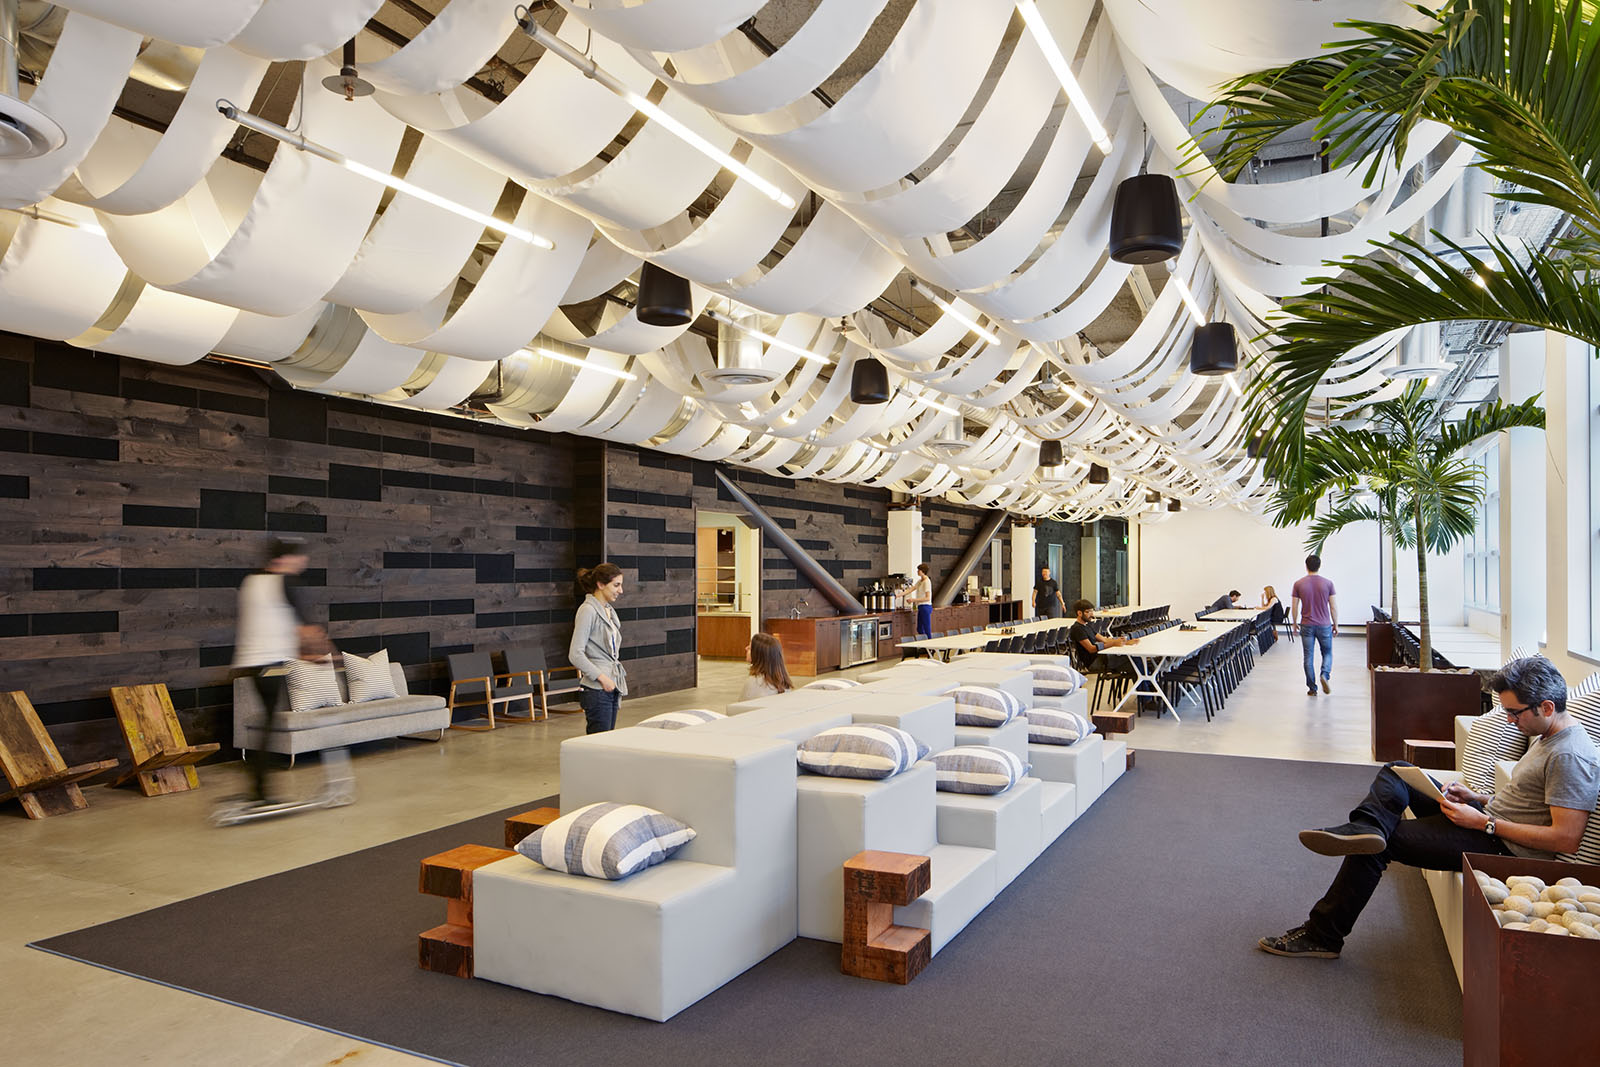 Dropbox California